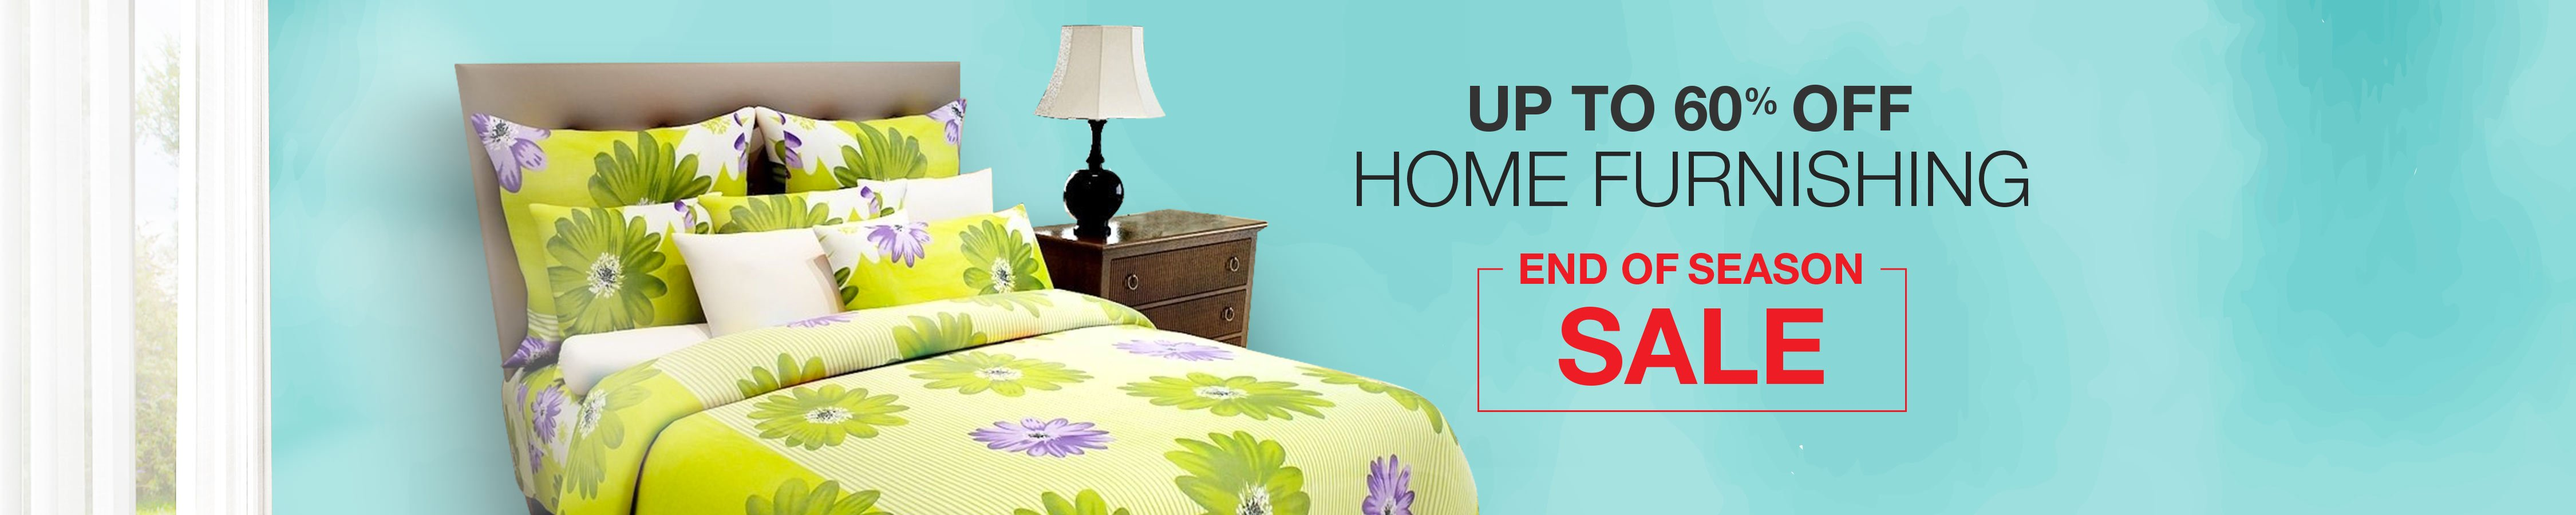 Eoss Home furnishing